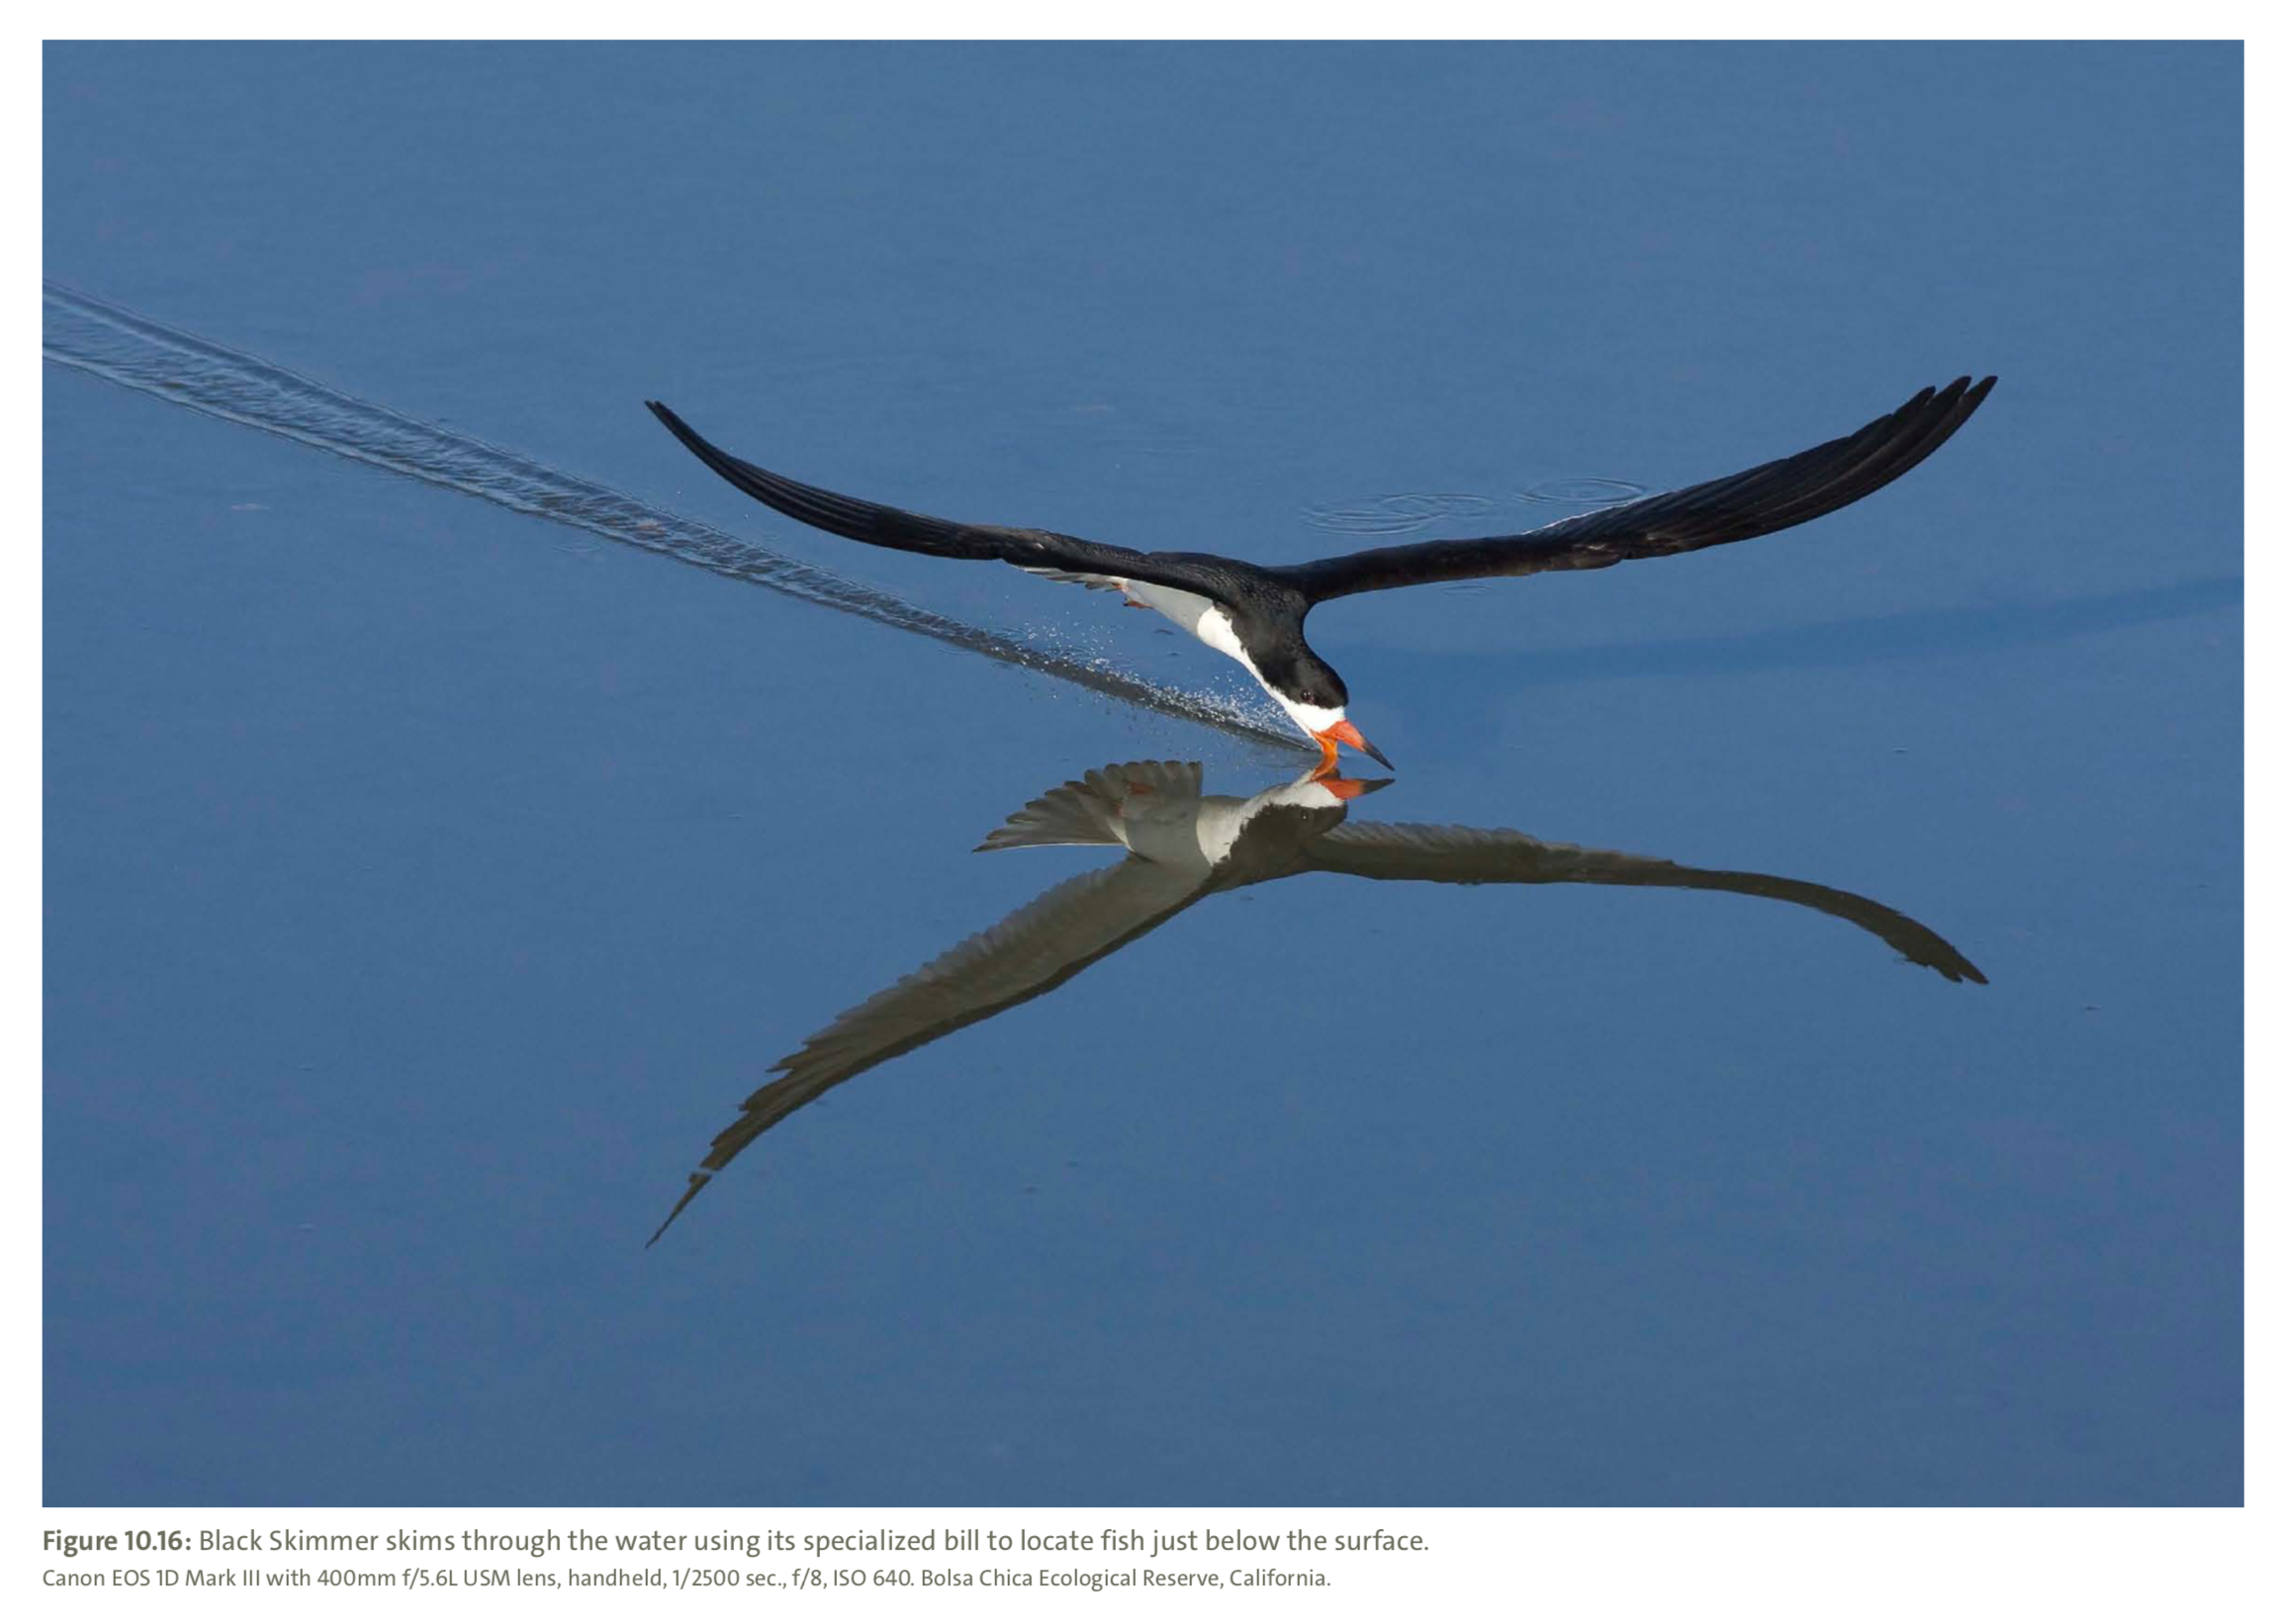 Figure 10.16 from Mastering Bird Photography  Photo: Marie Read